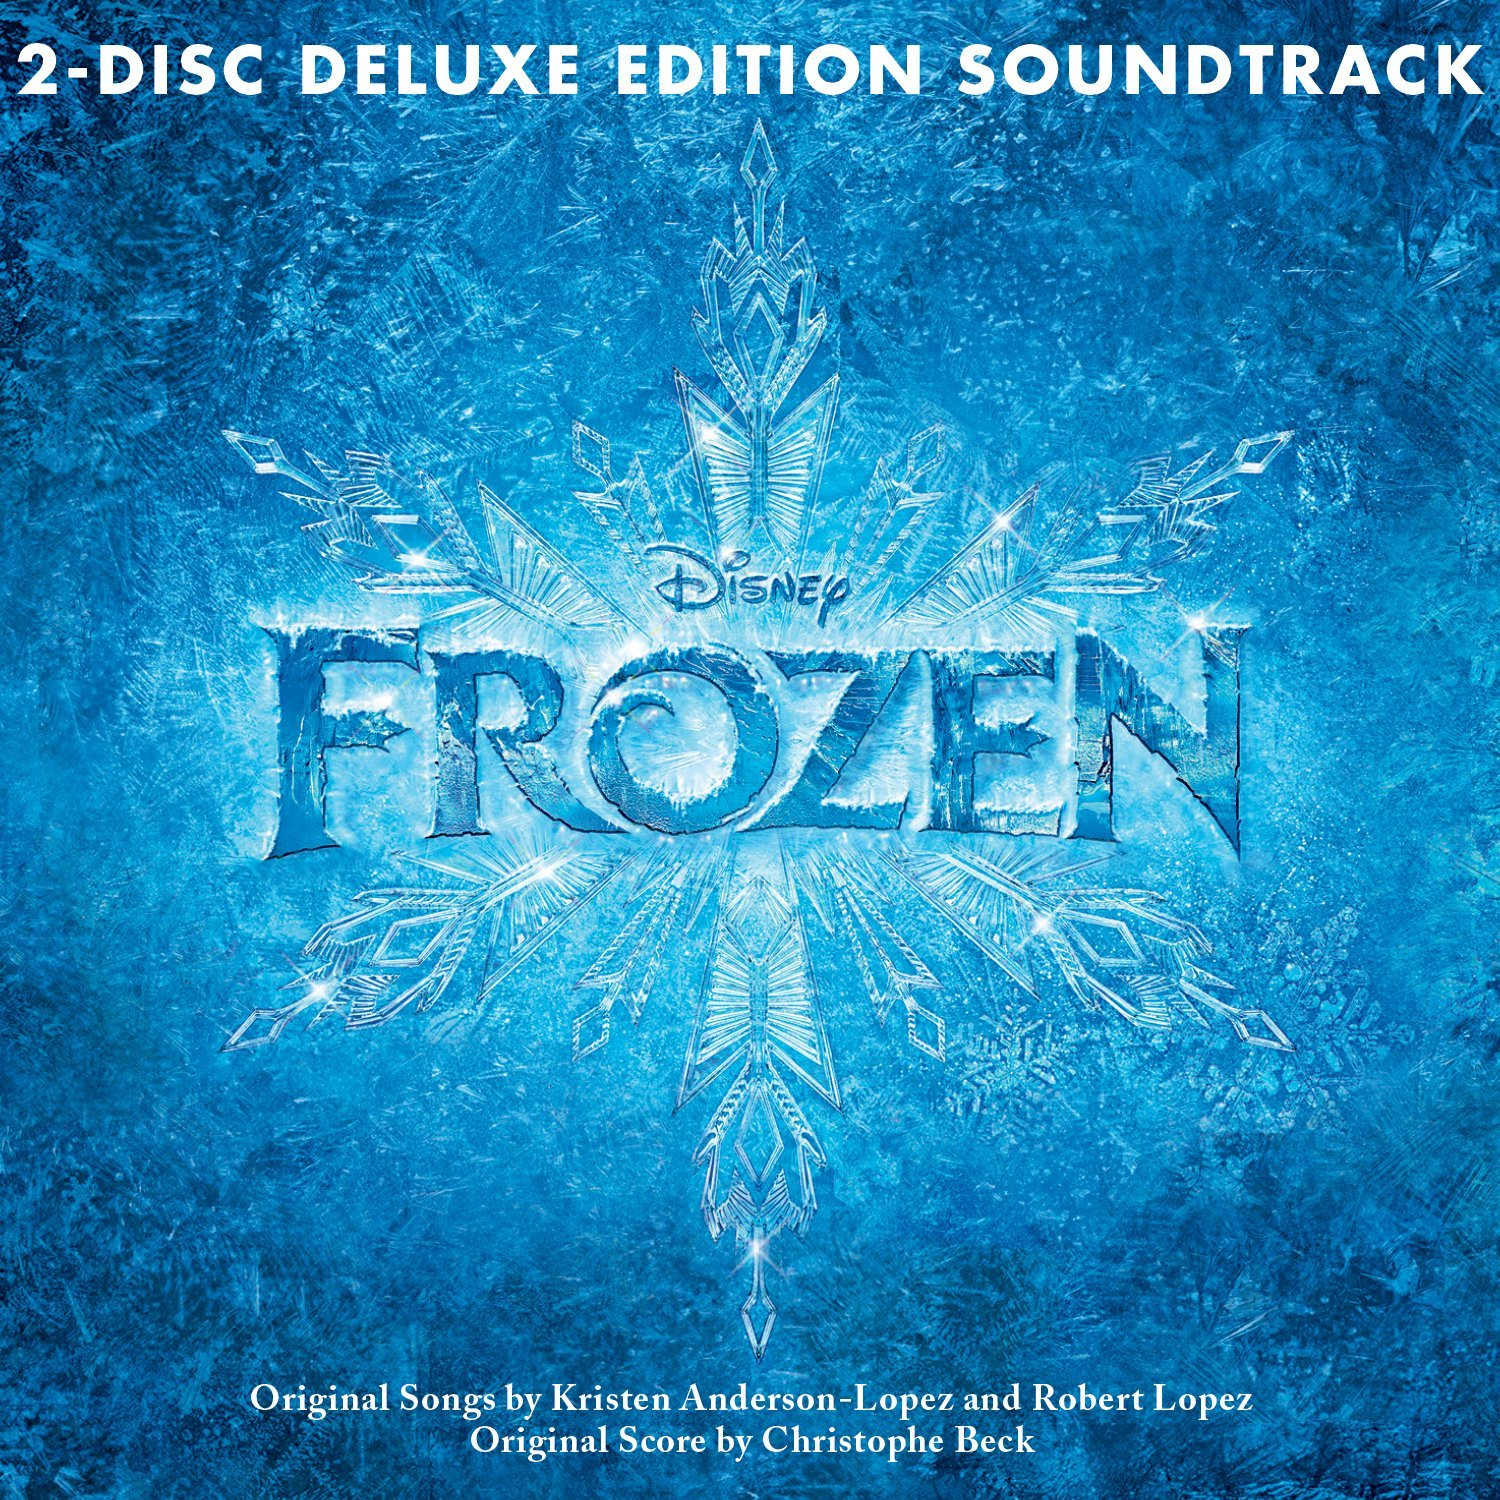 Alright Frozen fans, we have got MAJOR soundtrack news! Disney has officially lifted the curtain on the full, detailed track listing for the upcoming Frozen Deluxe Edition Soundtrack. Posted on […]